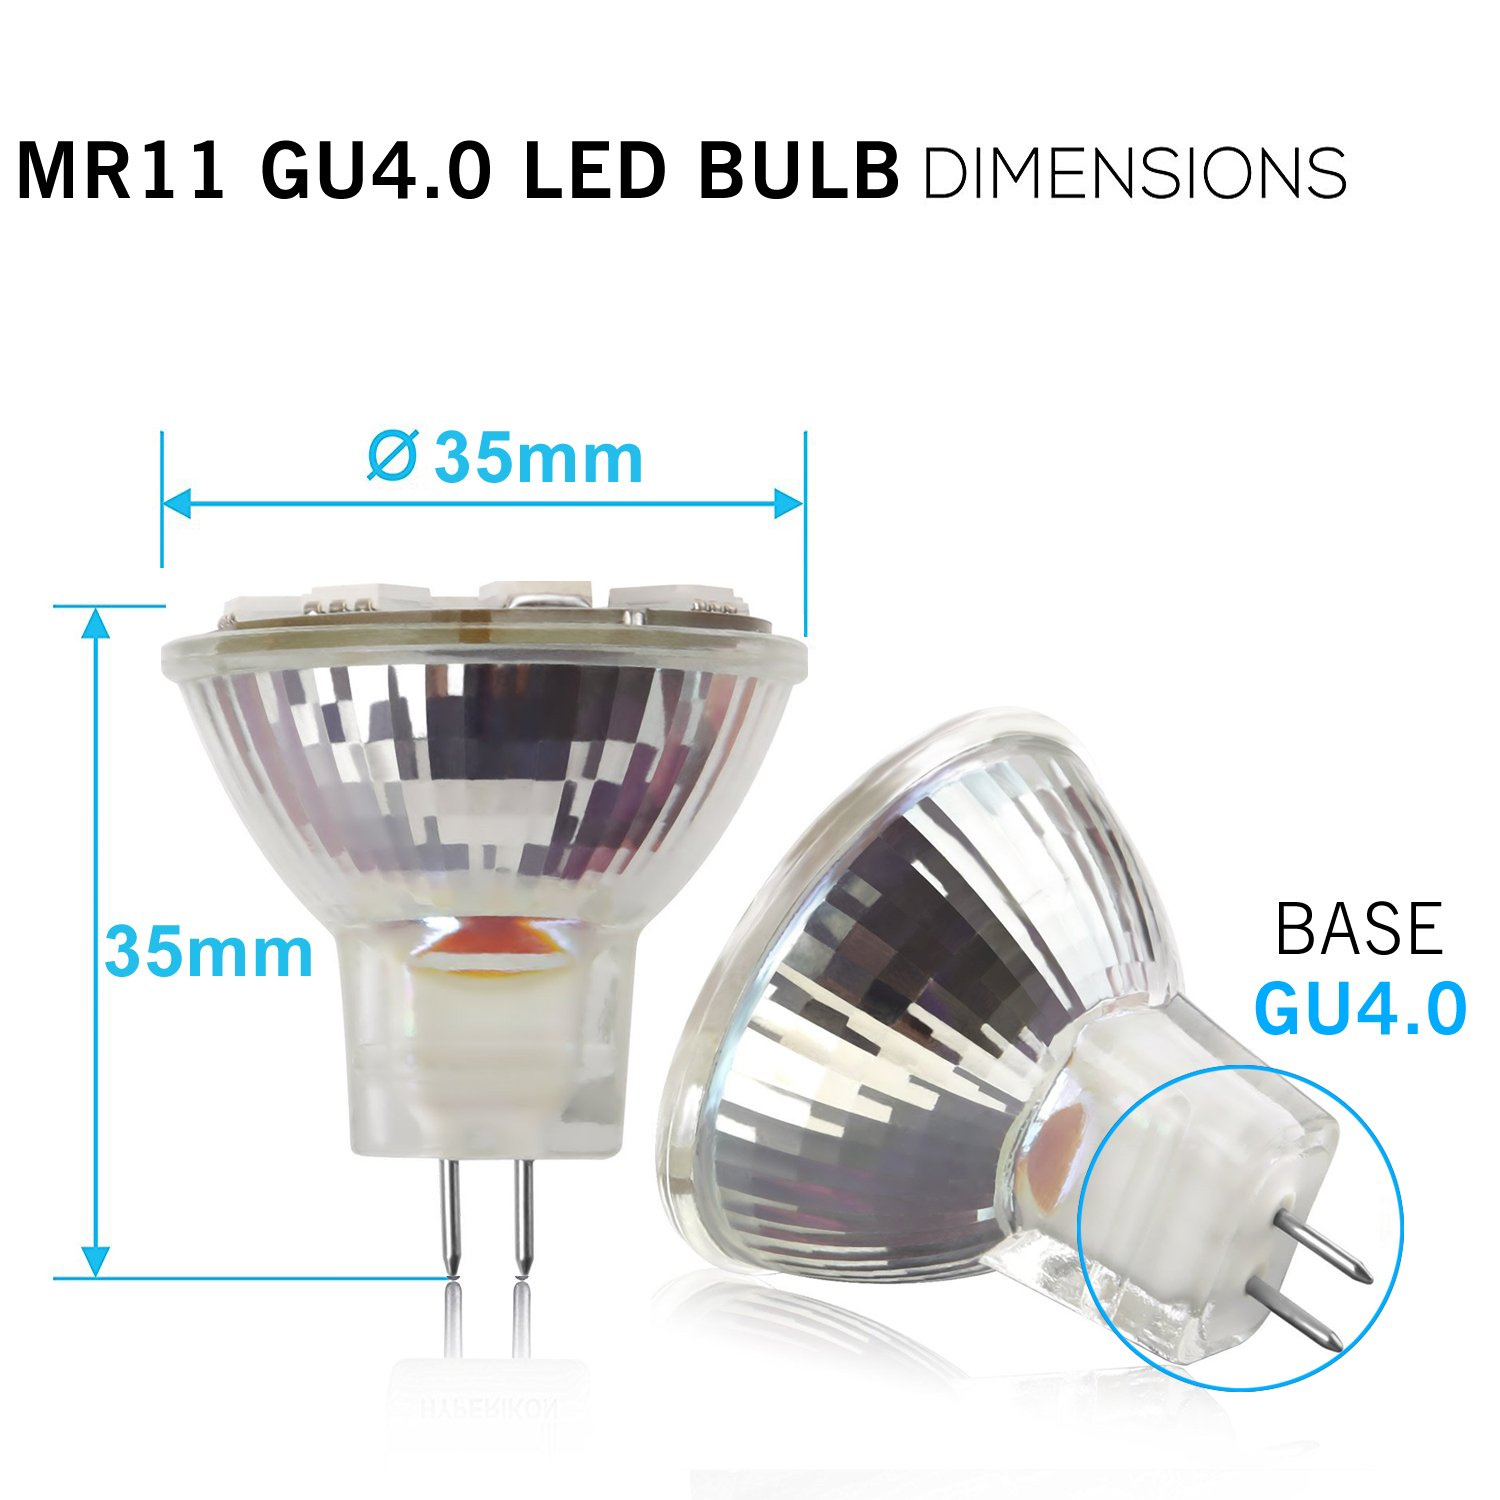 71bxli0fHlL._SL1500_ Wunderbar Led Mr11 Gu4 Warmweiss Dekorationen